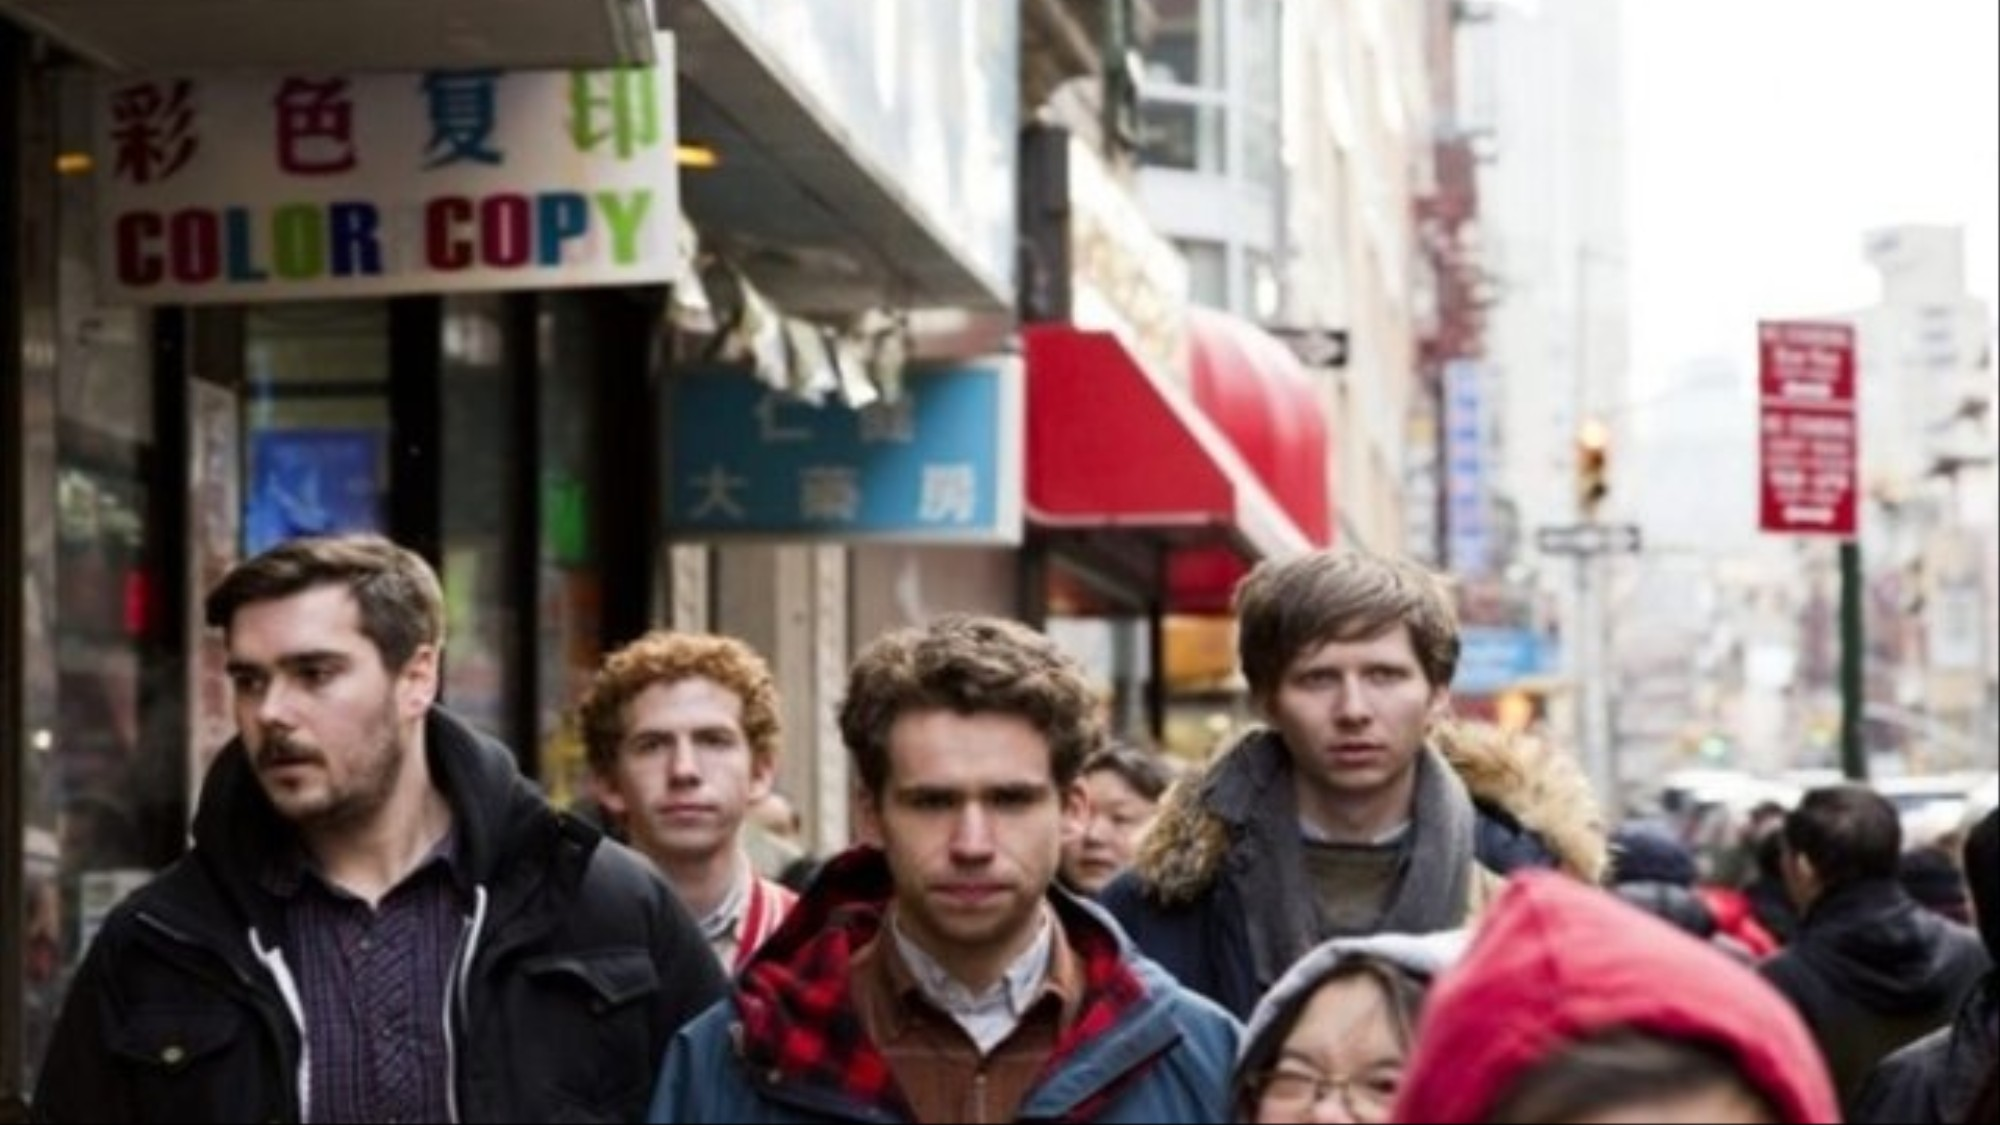 Why Do Parquet Courts Hate Australia? - VICE